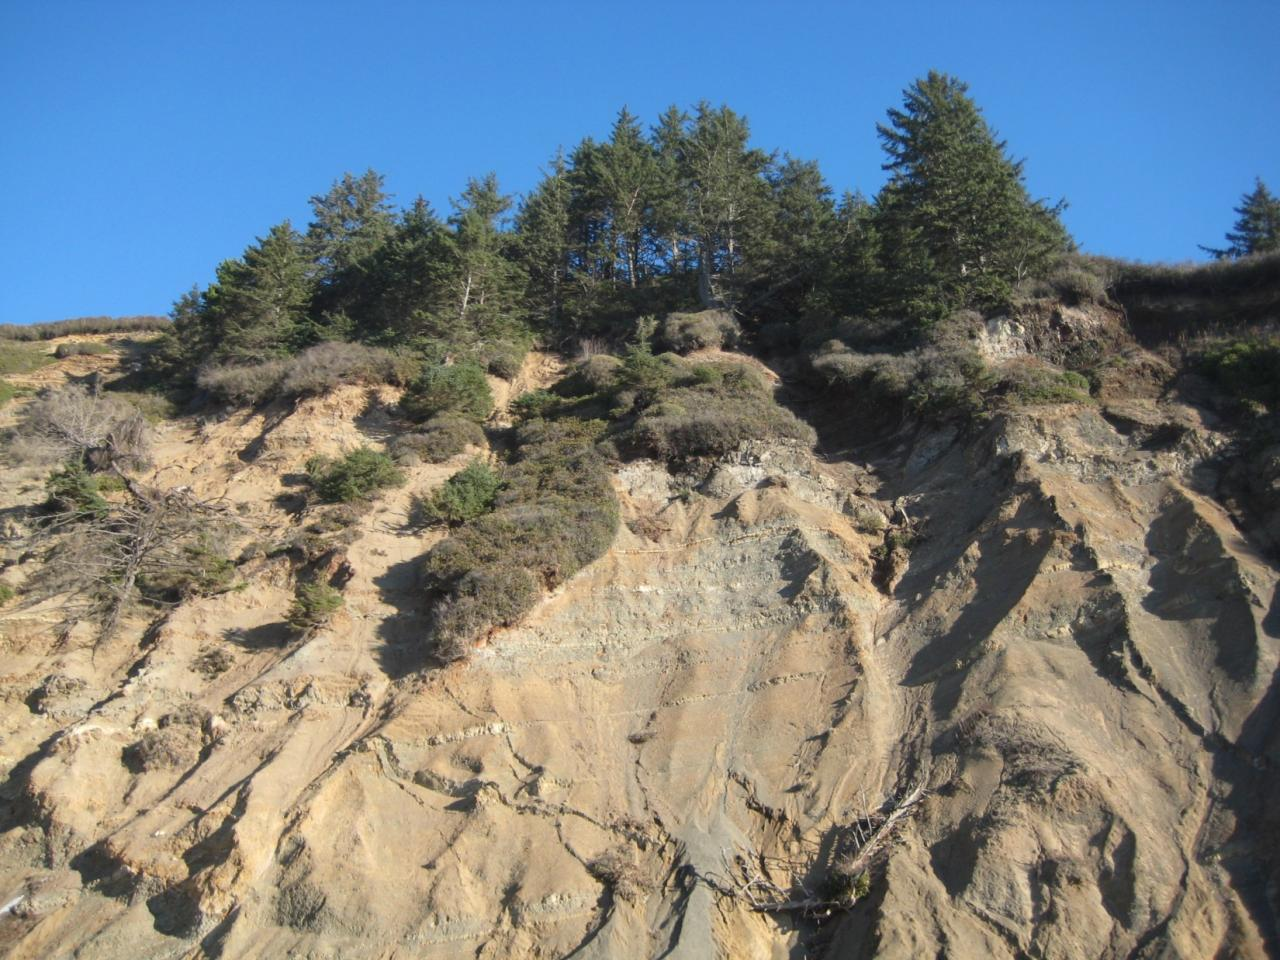 Uplifted basalt cliff face north end of mi 245